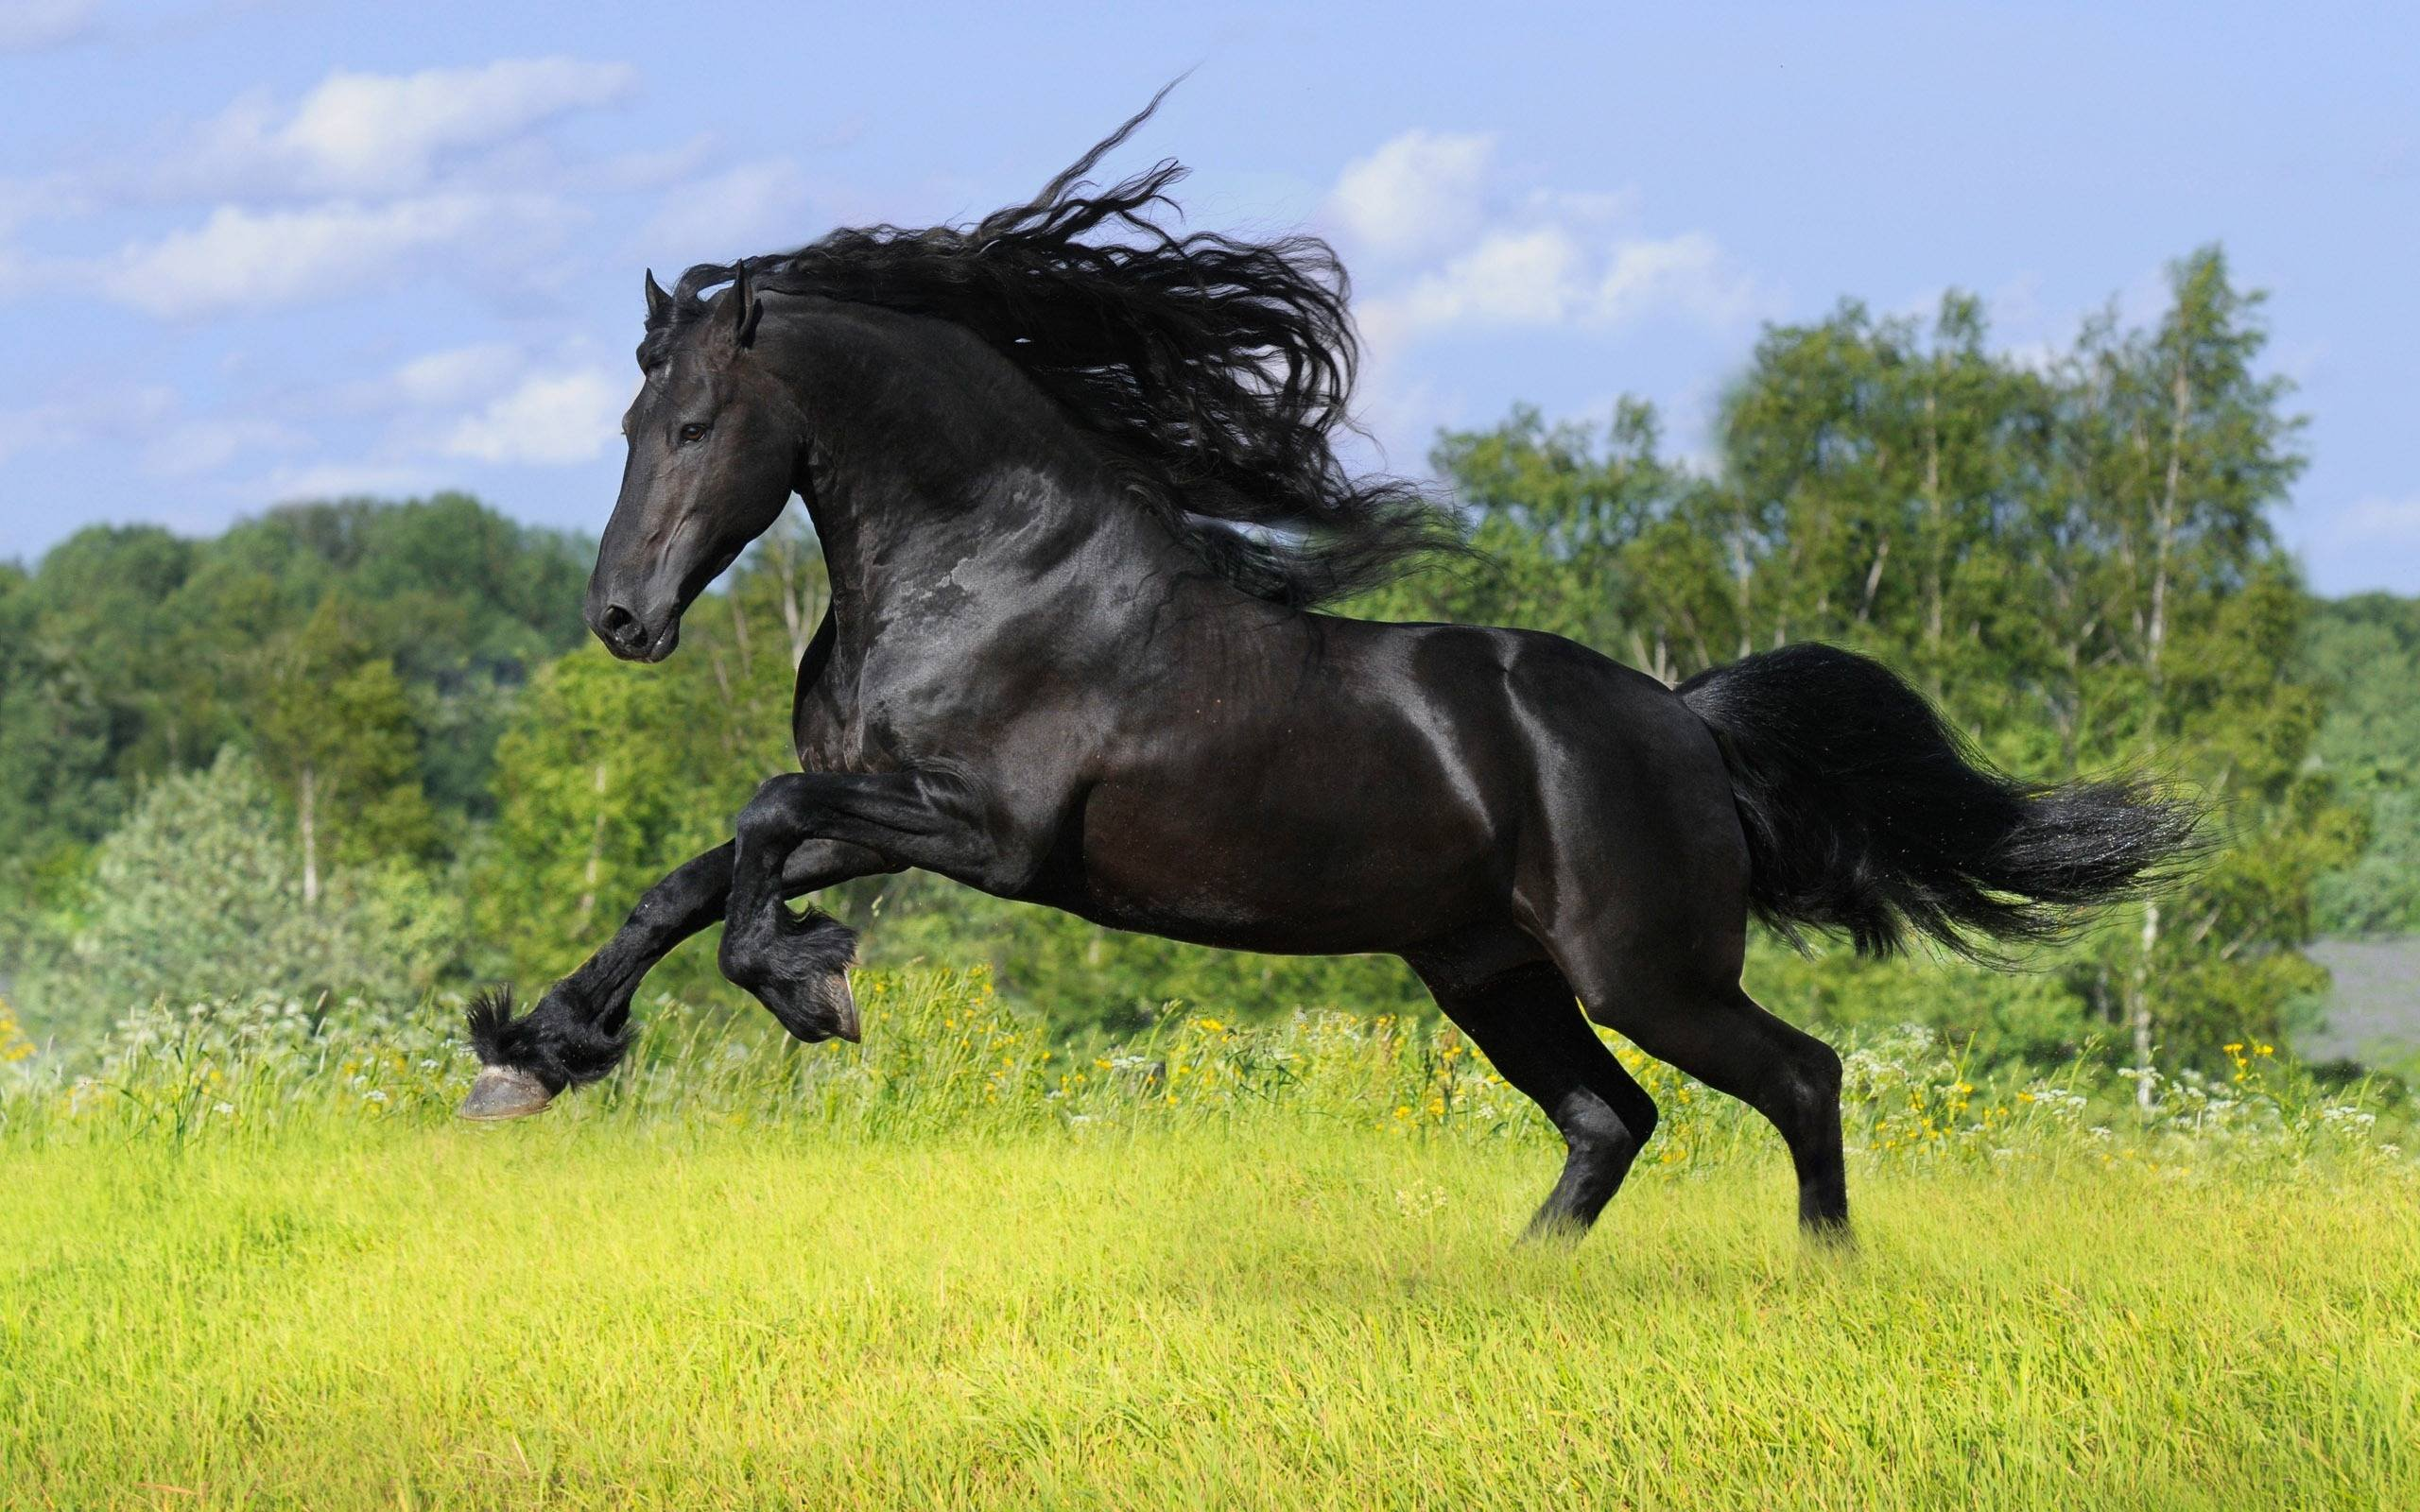 Running Black Horse Hd Wallpaper